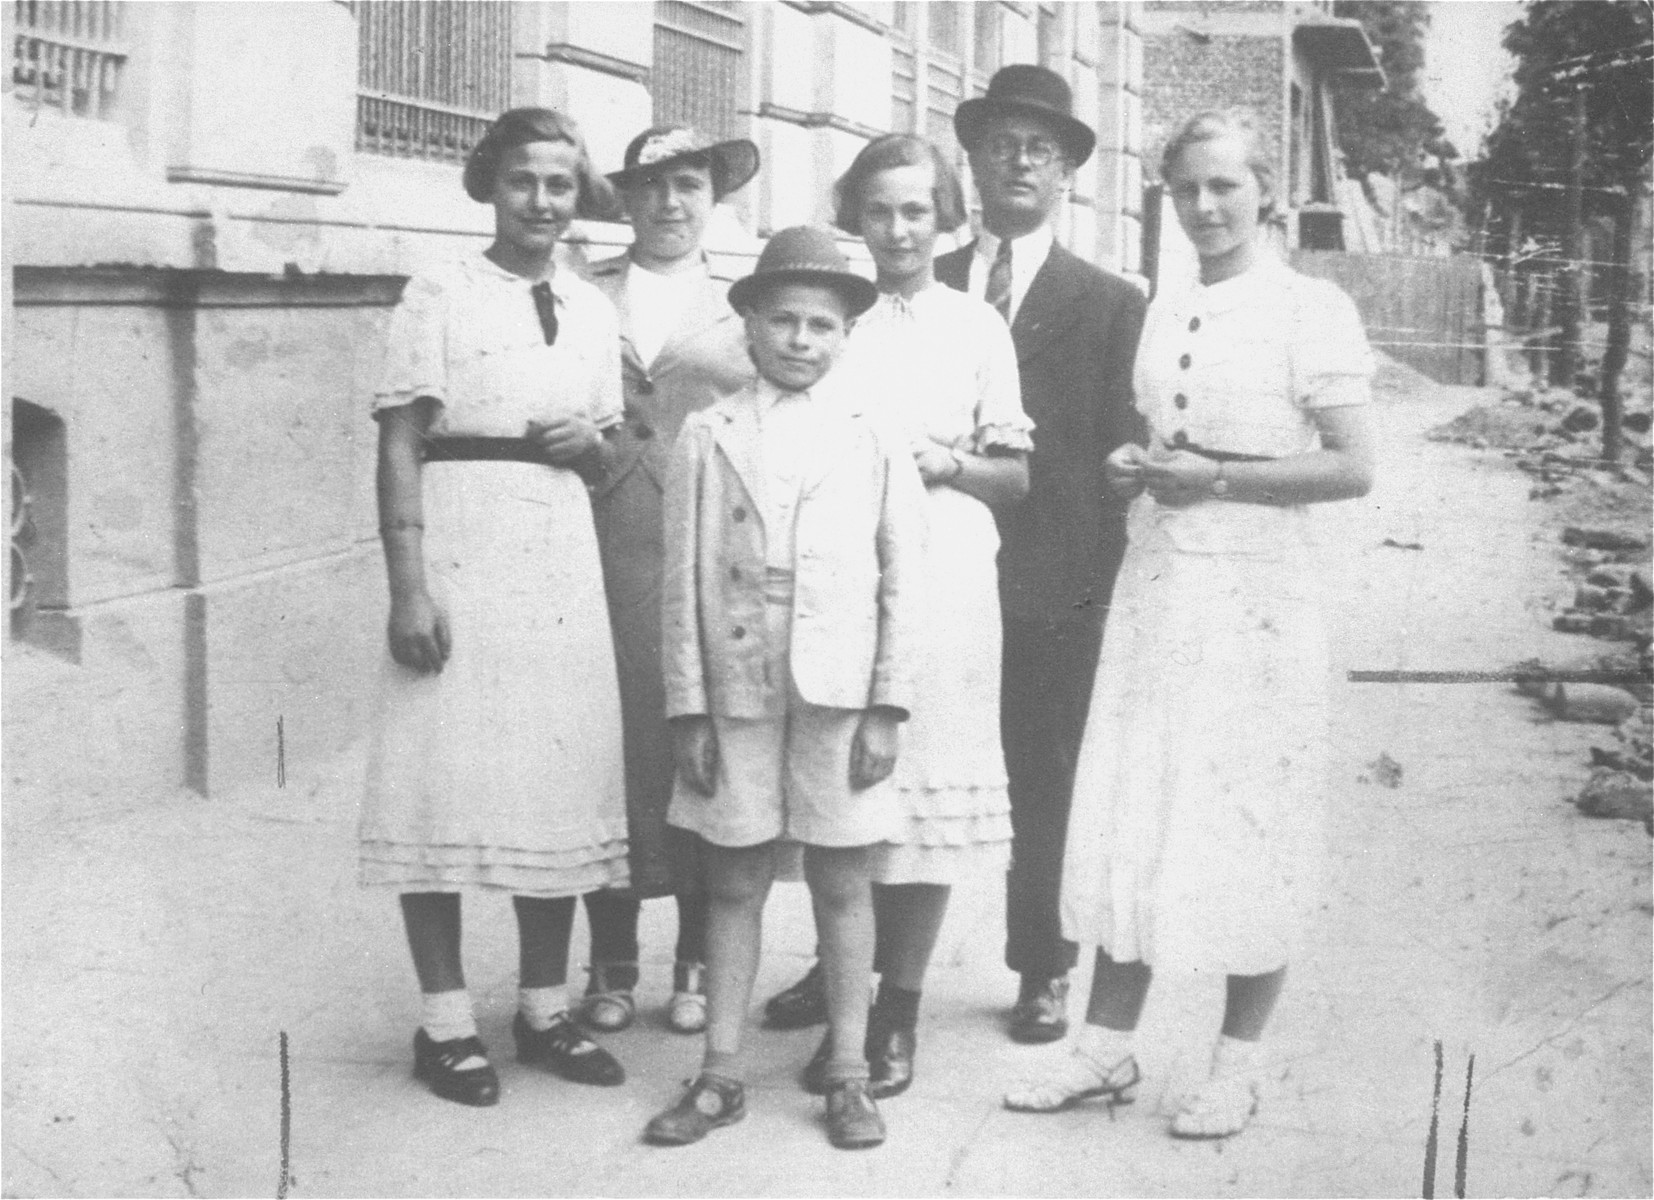 Members of the Petranker family pose on the street in Stanislawow.  Pictured from left to right are: Amalie Petranker; Frieda Petranker (behind); Menashe Honigsberg; Celia Petranker; David Petranker, and Pepka Petranker.   Menashe was a cousin who came to live with the Petrankers after the death of his mother.